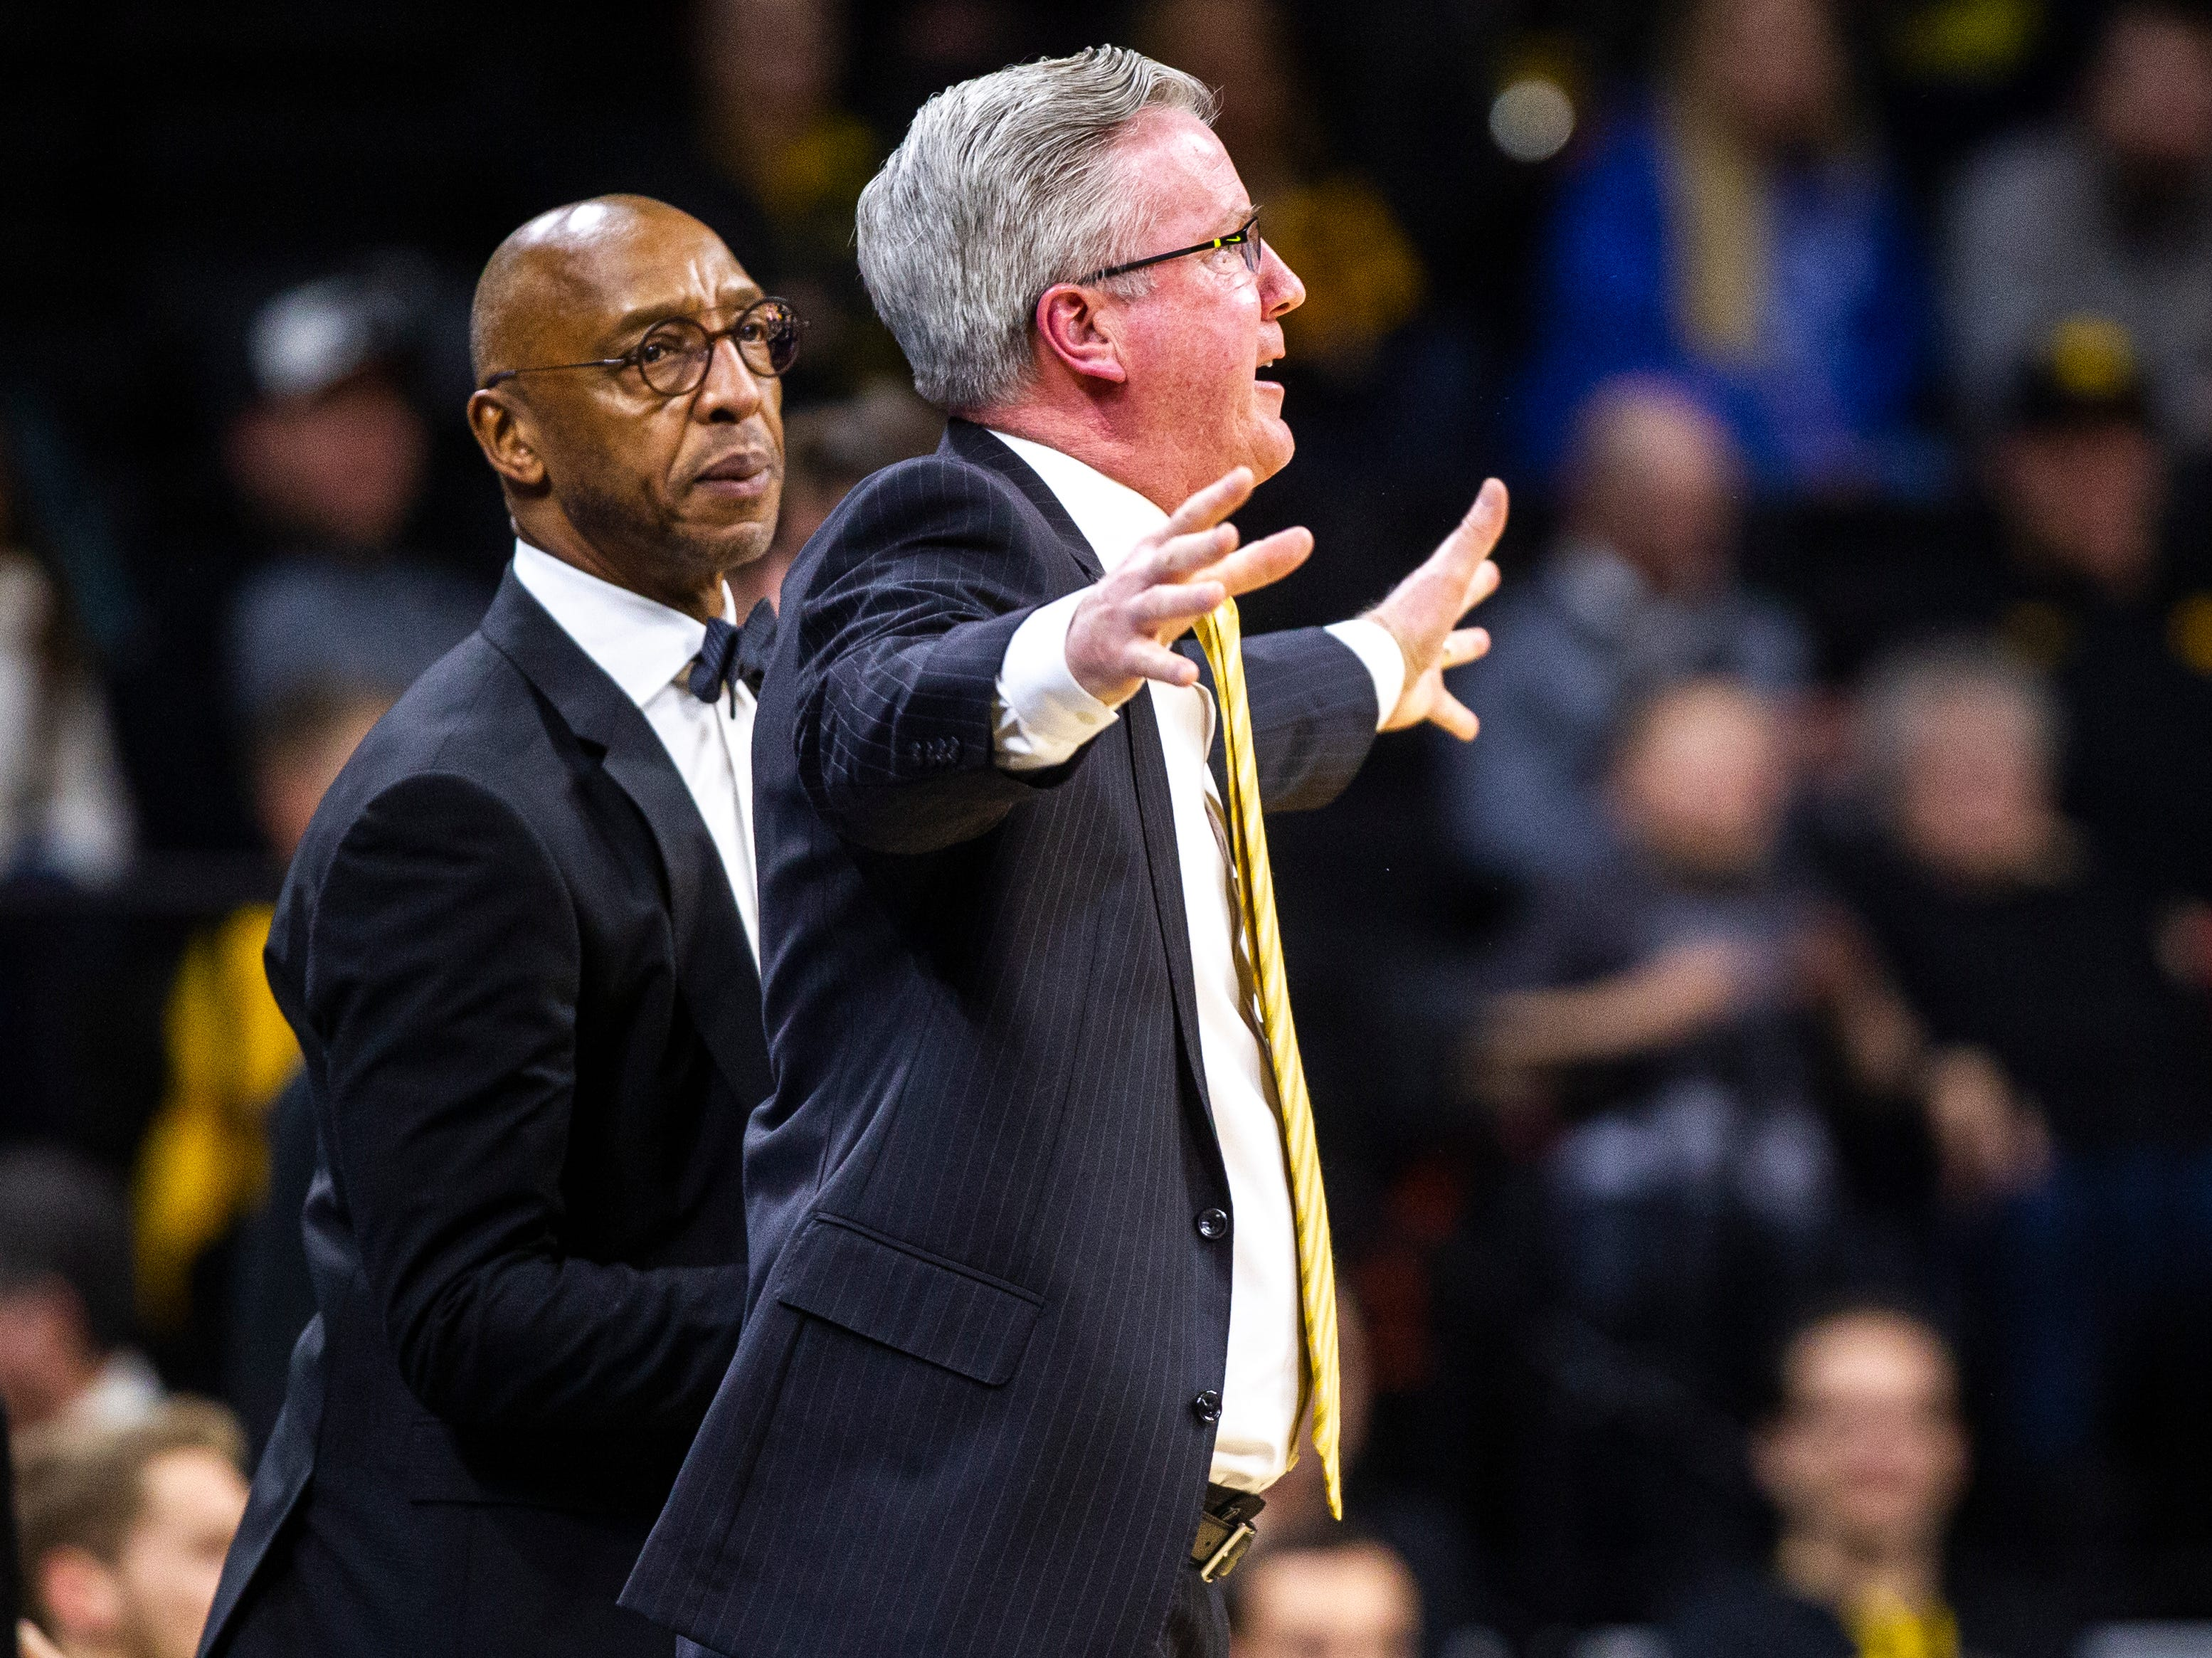 Iowa men's basketball head coach Fran McCaffery calls out while assistant Sherman Dillard, left, looks on during a NCAA Big Ten Conference men's basketball game on Friday, Feb. 1, 2019, at Carver-Hawkeye Arena in Iowa City, Iowa.